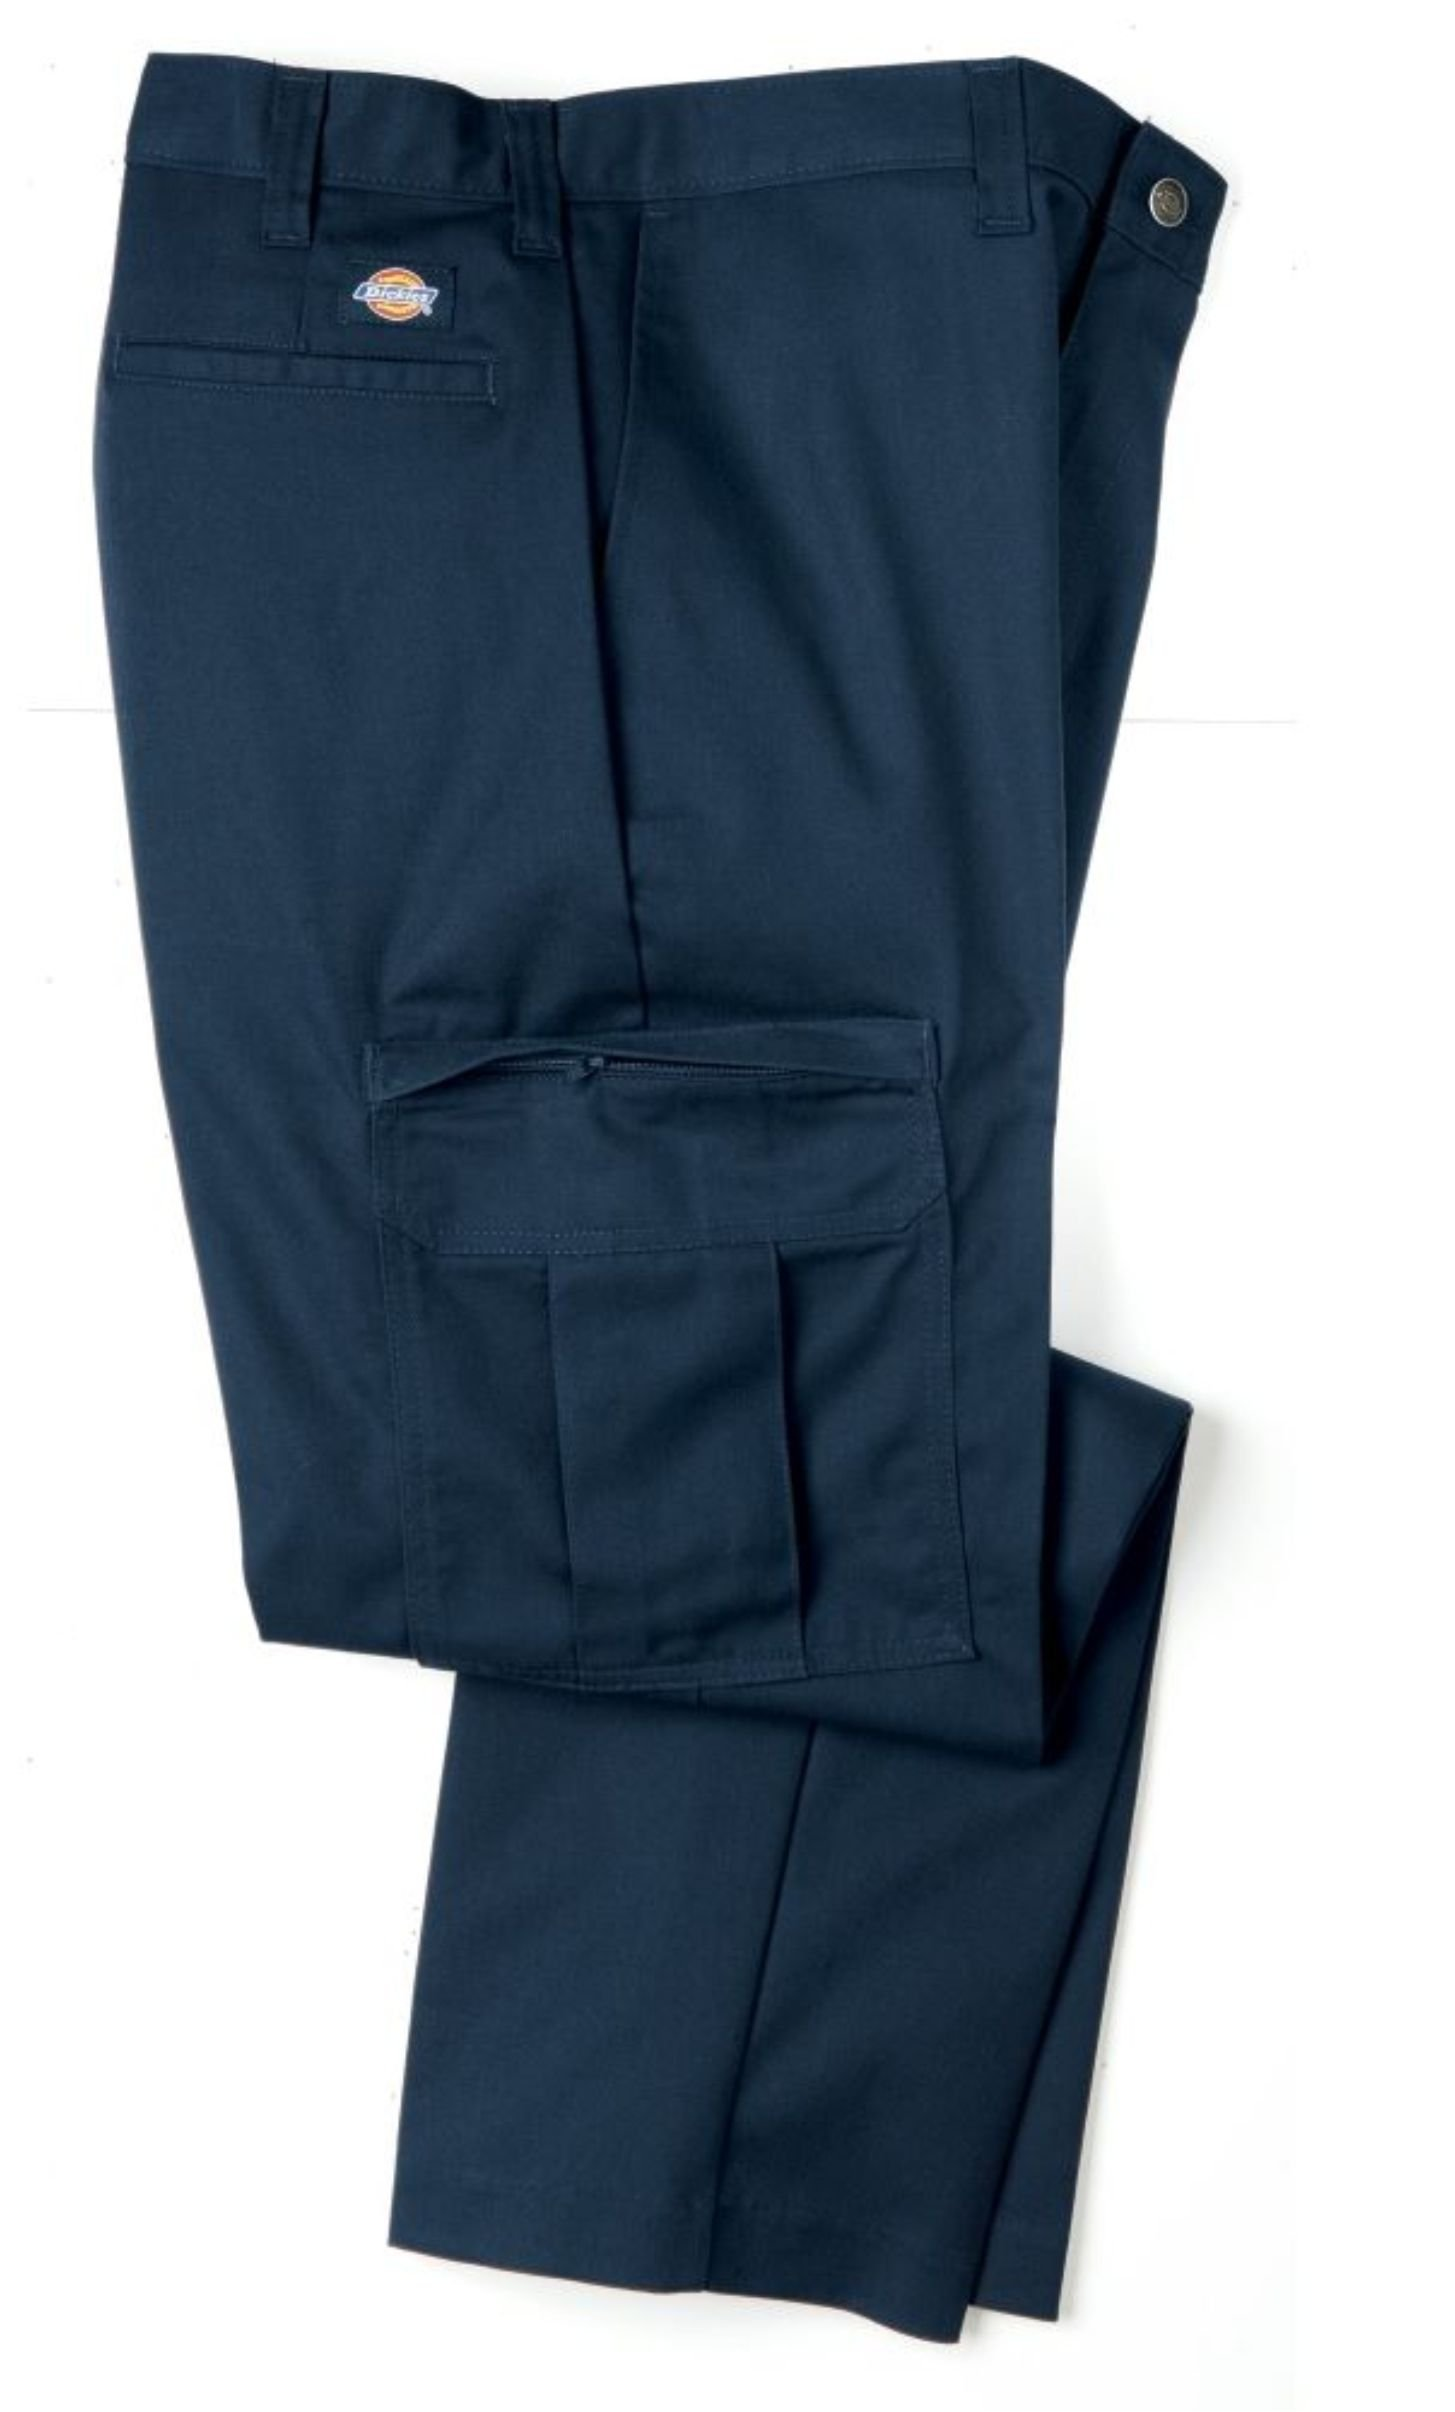 Dickies Occupational Workwear 2112372NV 42x30 Polyester/ Cotton Relaxed Fit Men's Premium Industrial Cargo Pant with Straight Leg, 42'' Waist Size, 30'' Inseam, Navy Blue